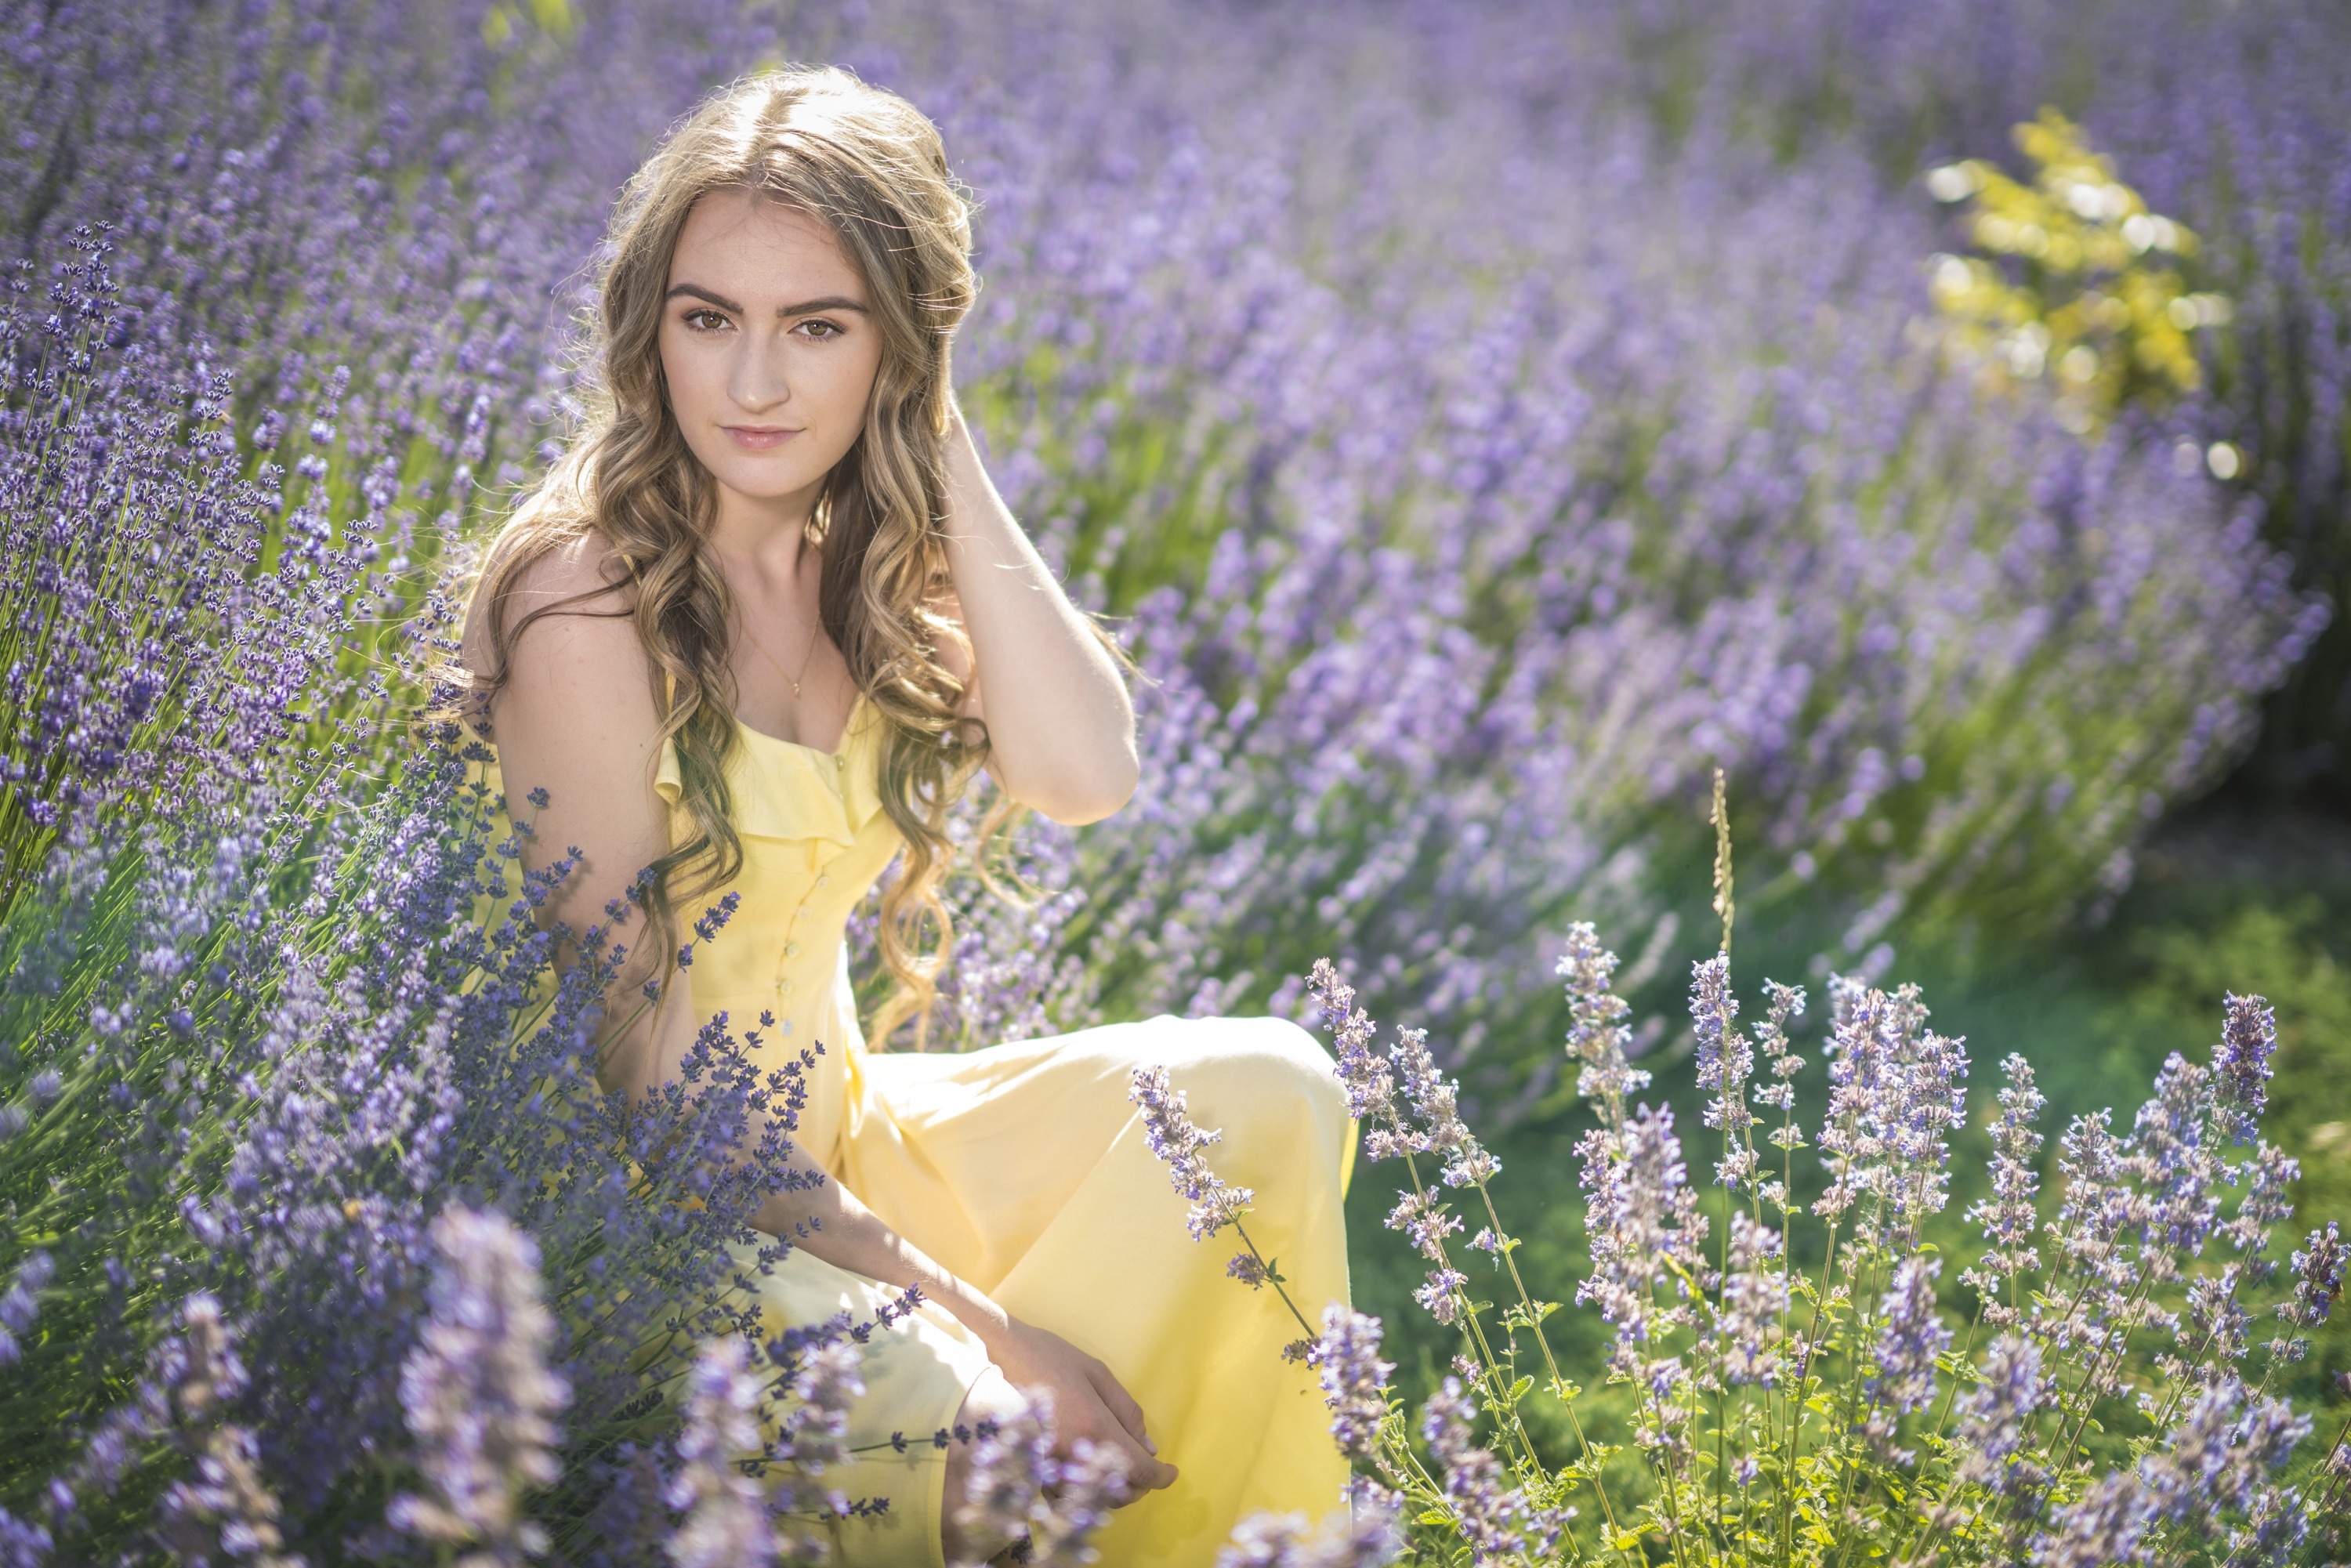 High School Senior picture of a girl in a lavender field wearing a soft yellow sun dress.